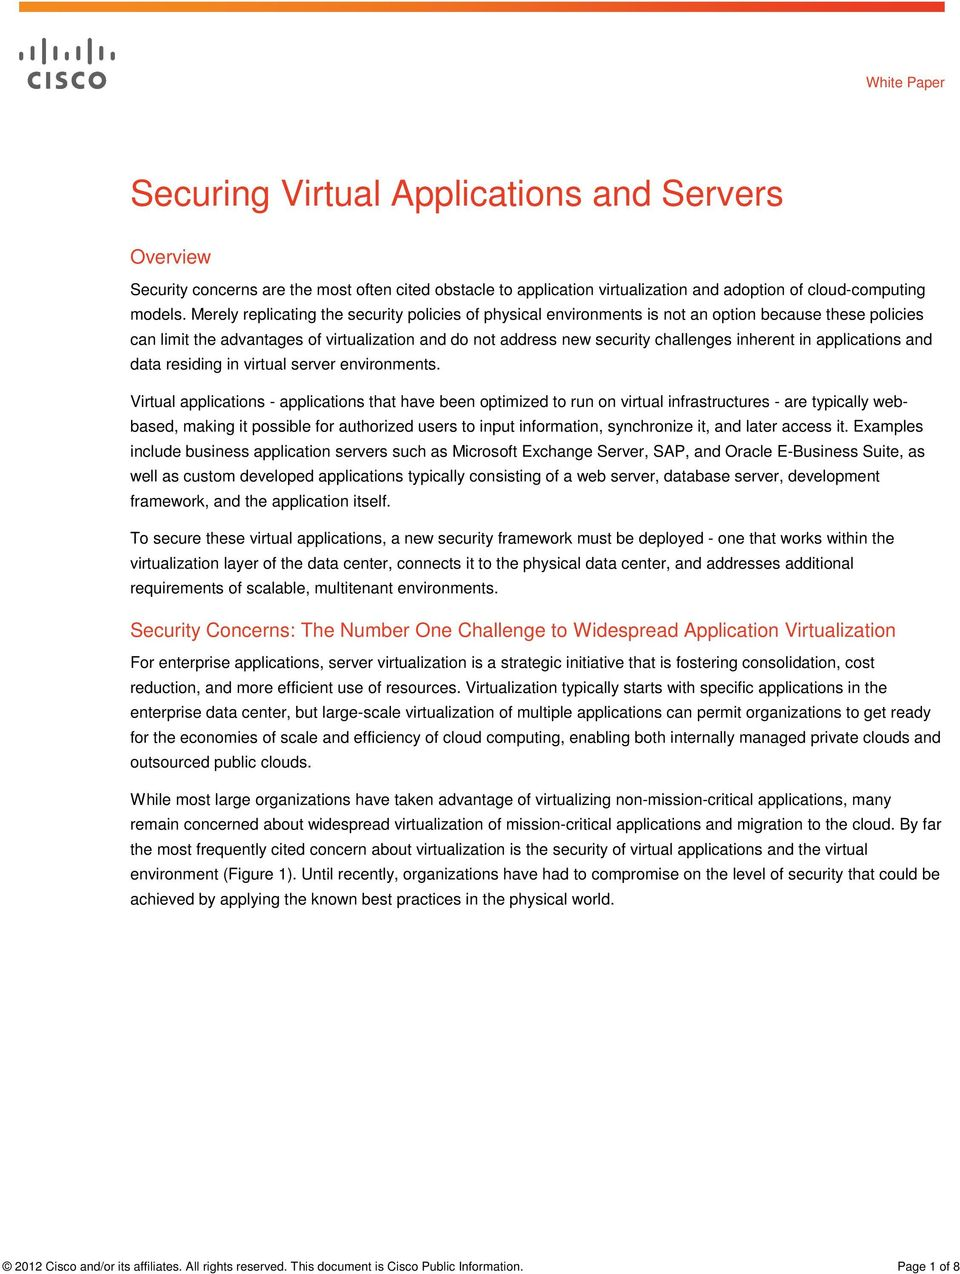 inherent in applications and data residing in virtual server environments.